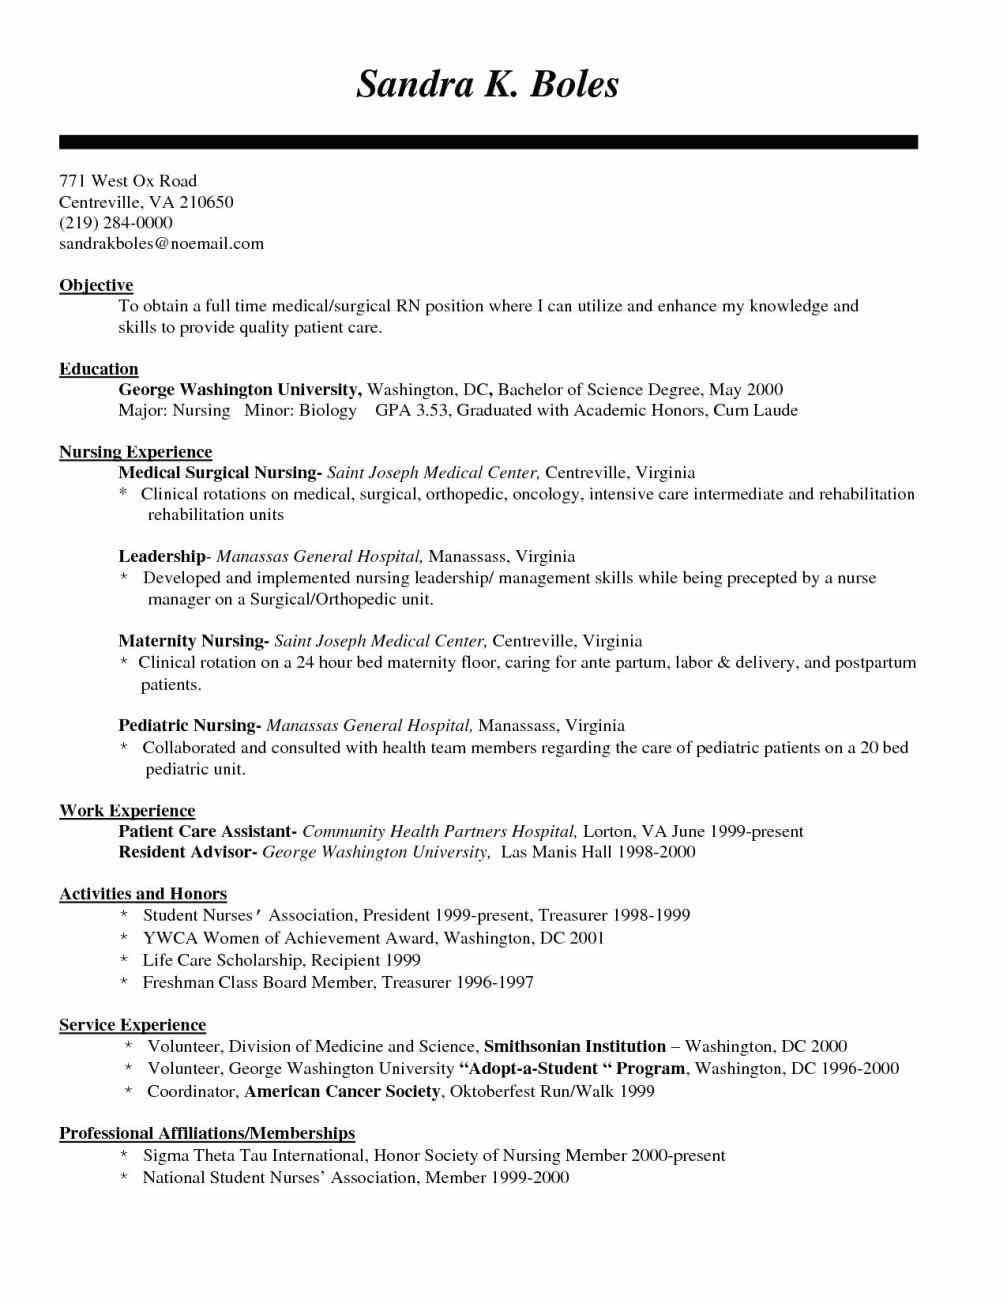 Lifestyle Of Nurses Save The Board Save The Pin Please Tag Share Comment On The Pict Nursing Resume Template Nursing Resume Nursing Resume Examples